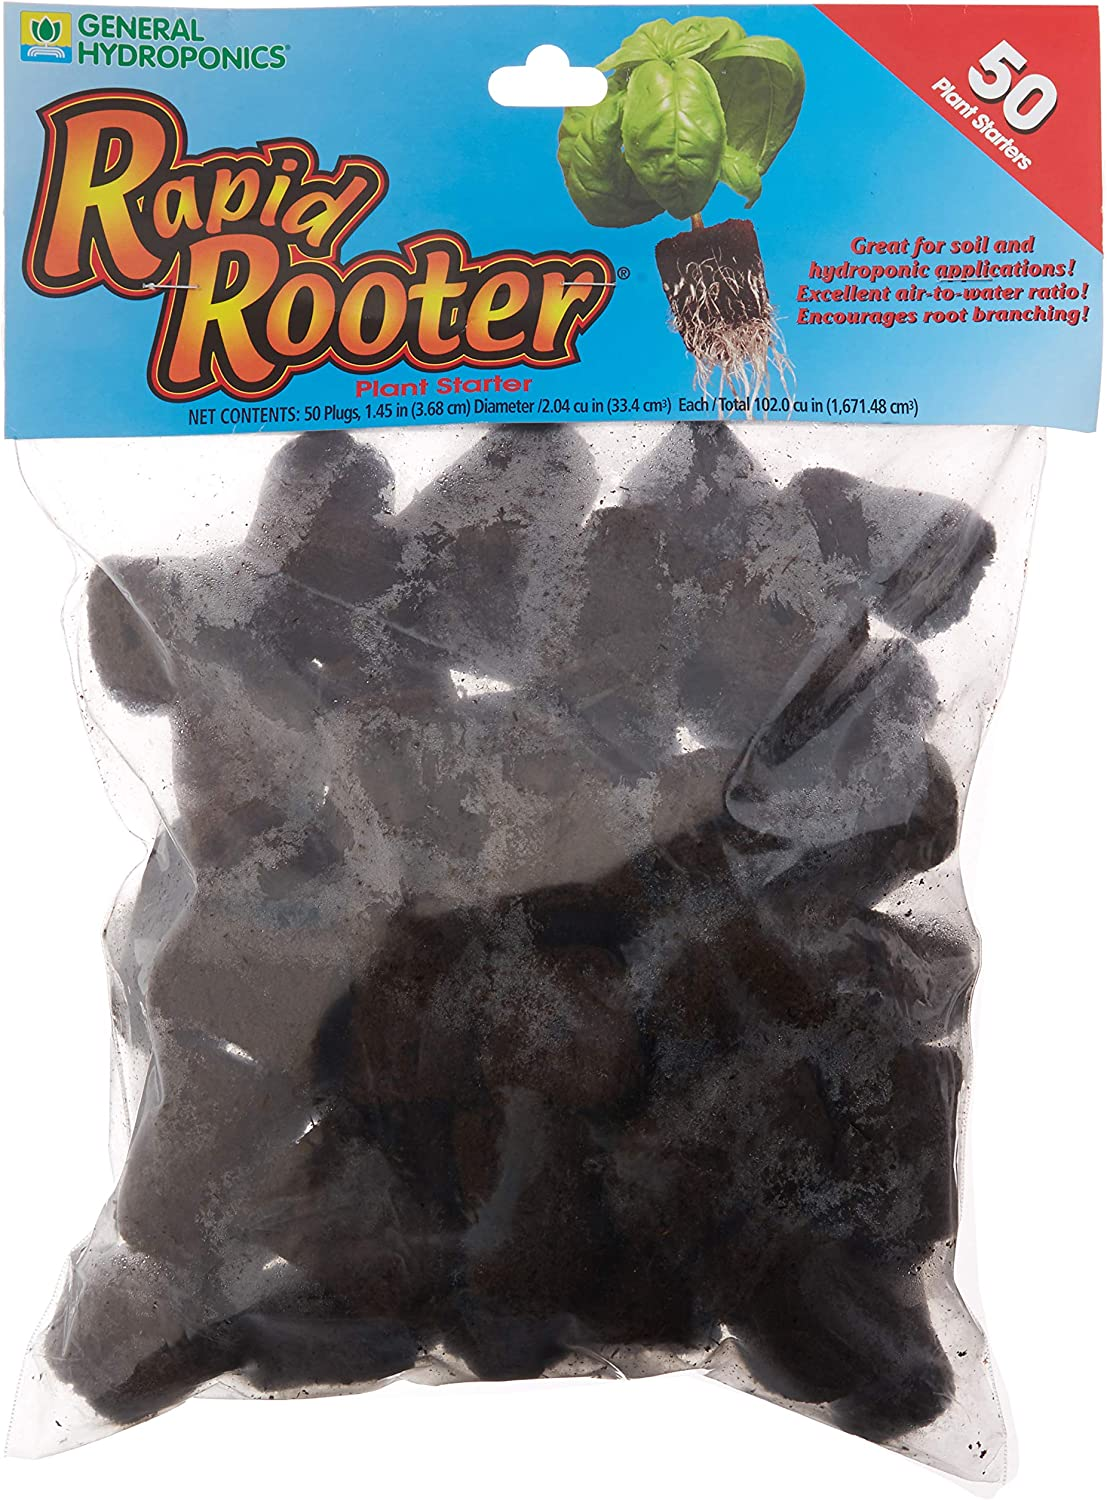 General Hydroponics HGC714135 Rapid Rooter Plant Starters, 50 Plugs, Black : Plant Germination Kits : Garden & Outdoor